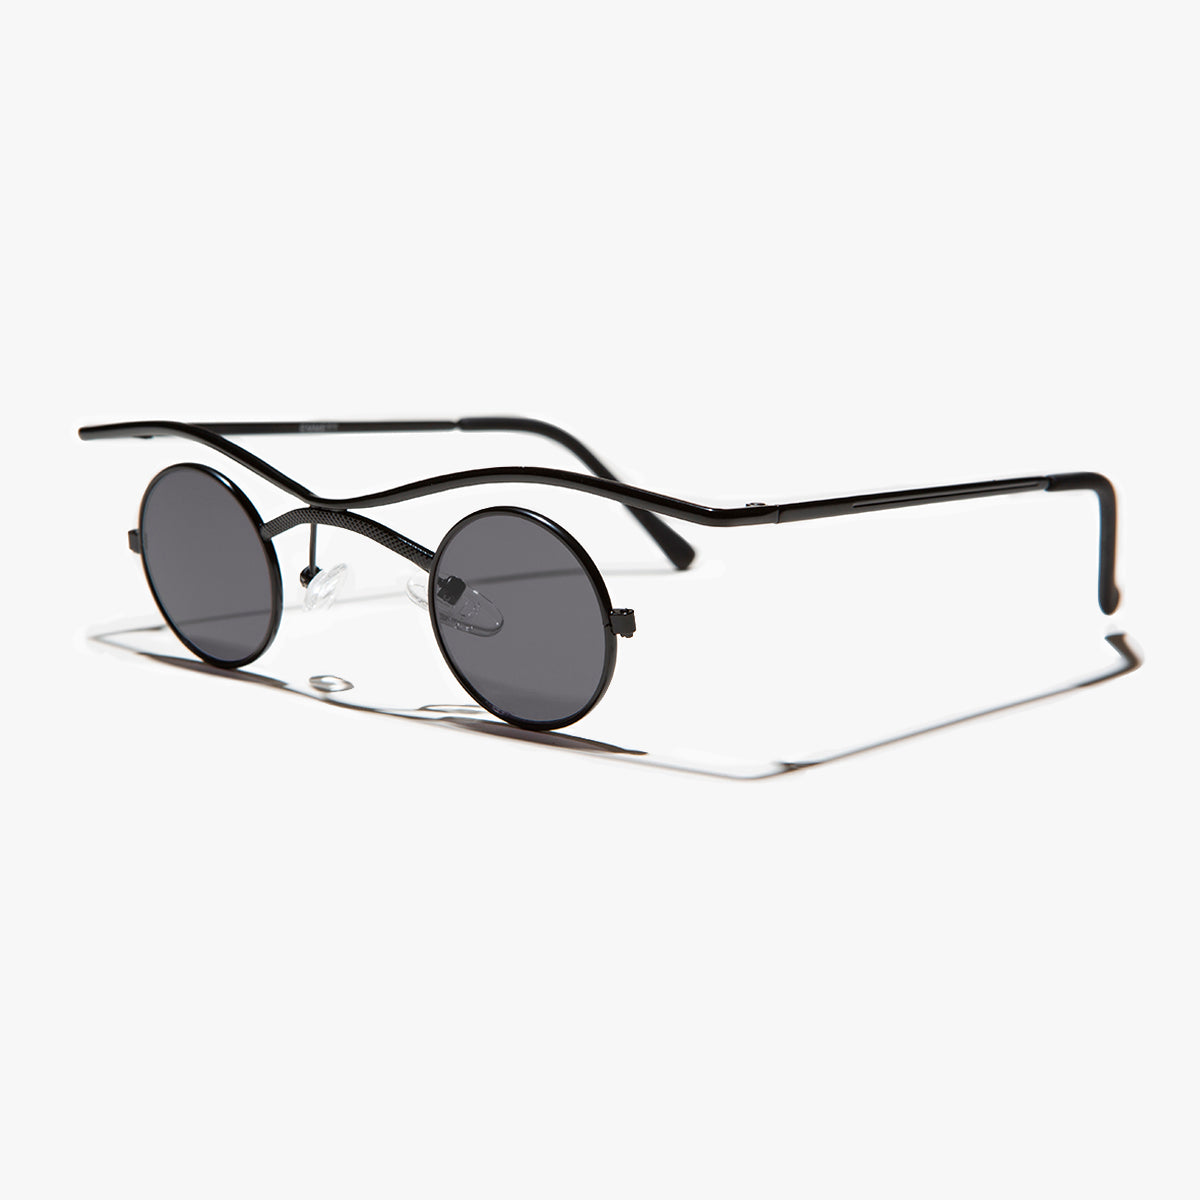 Futuristic Floating Spectacle Sunglass